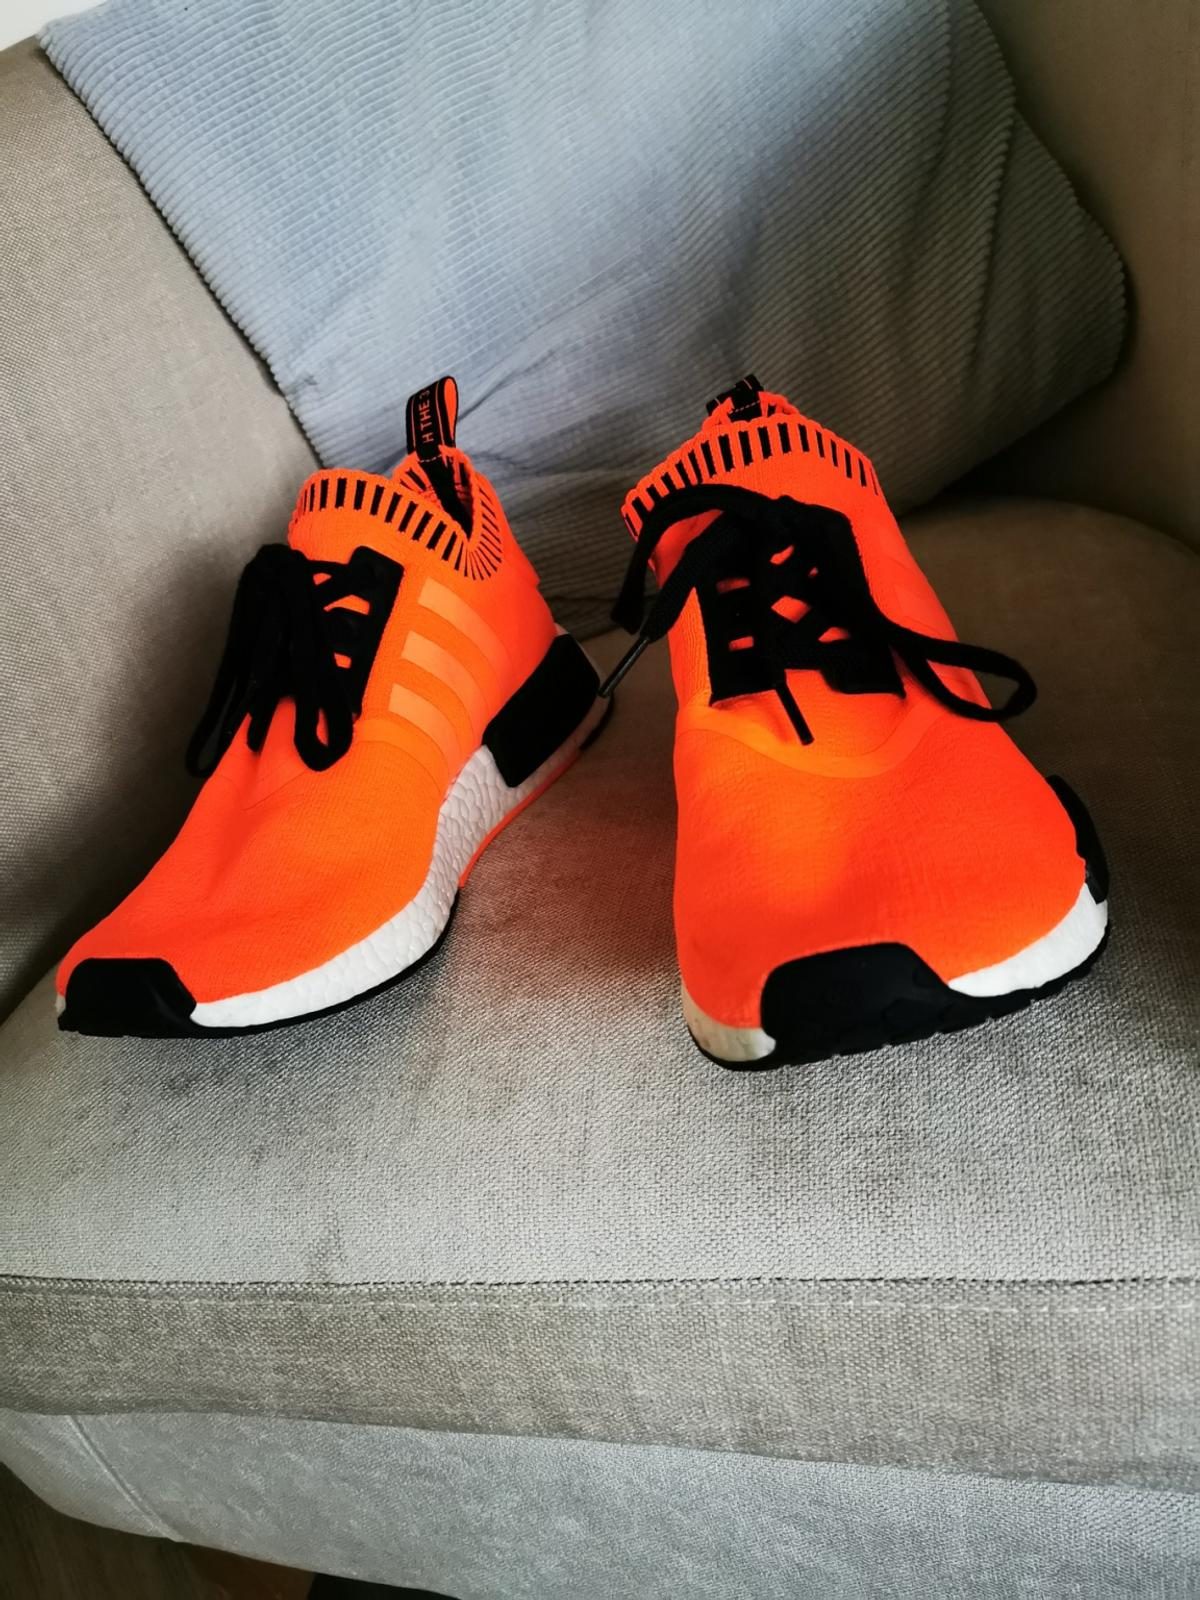 rarely worn and never seen anyone else wearing them! very bright very clean. men's size9 comes with box  collection only balby dn4  open to offers